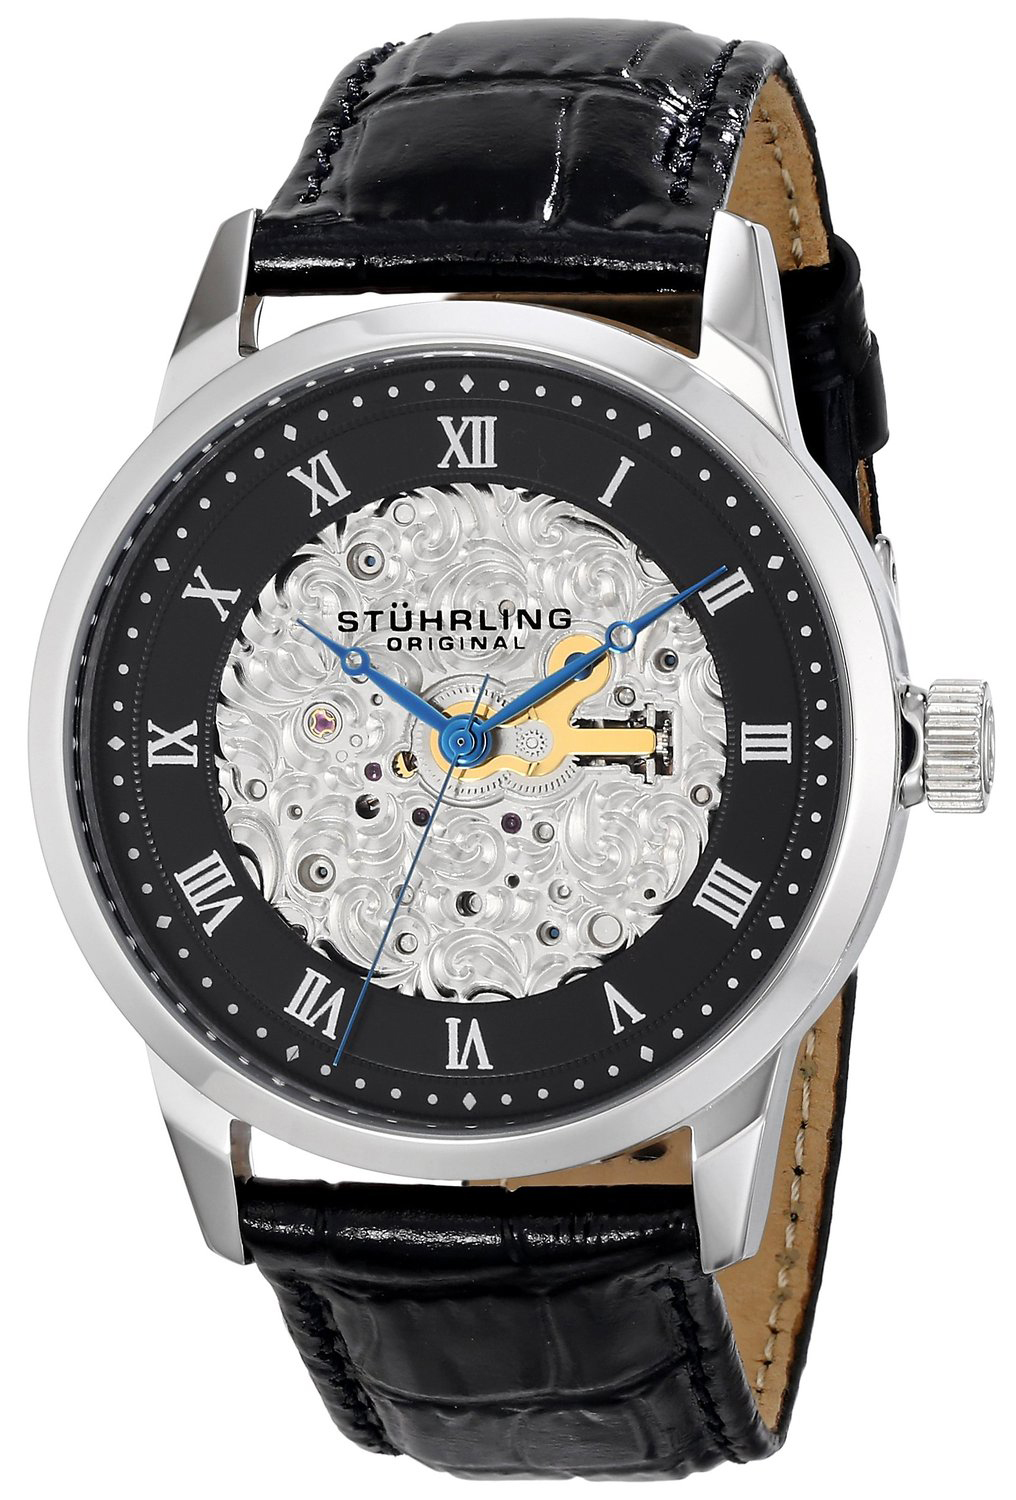 Stührling Original Herreklokke 585.02 Sort/Lær Ø42 mm - Stührling Original